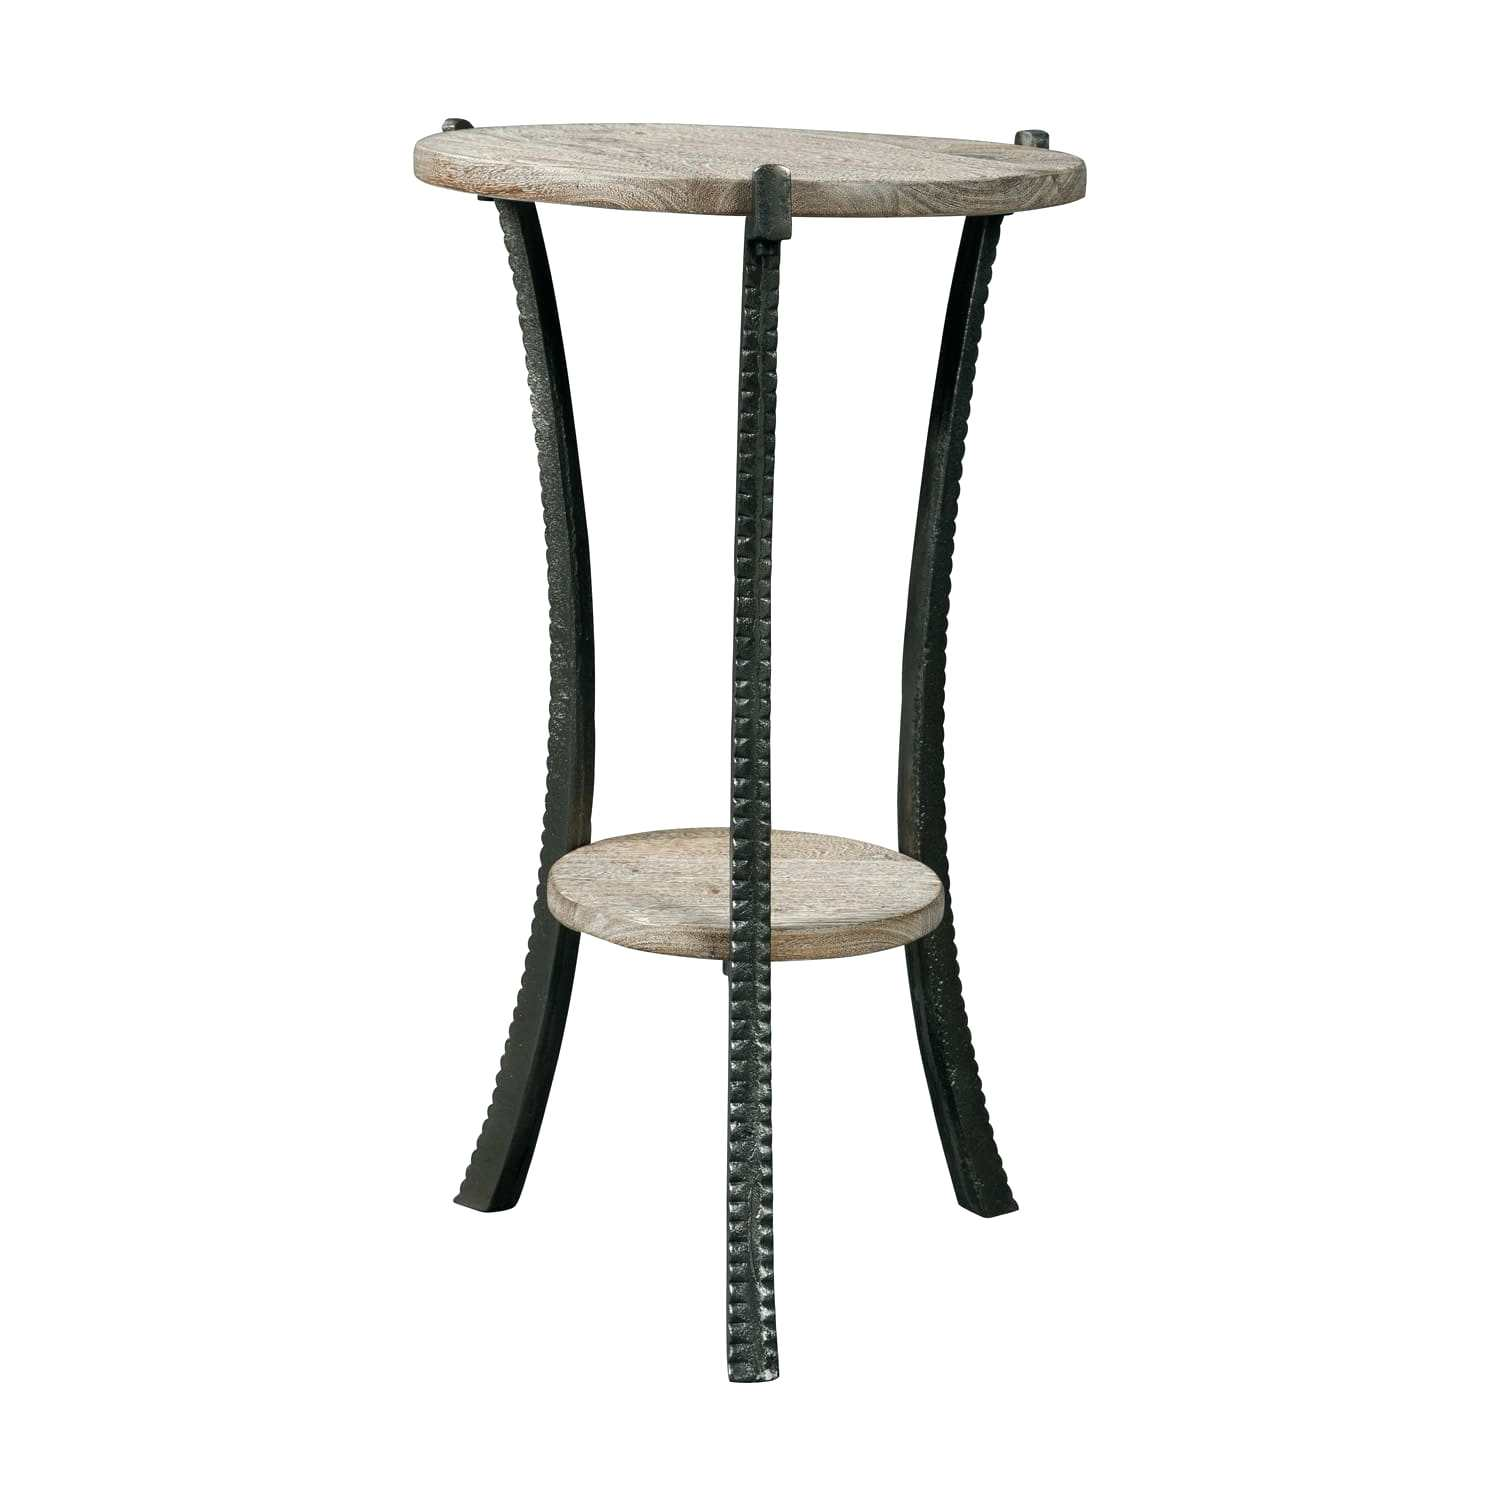 accent tables small for looknook table outdoor verizon android tablet off white bedside wrought iron patio coffee target student desk green marble top teal cabinet living room